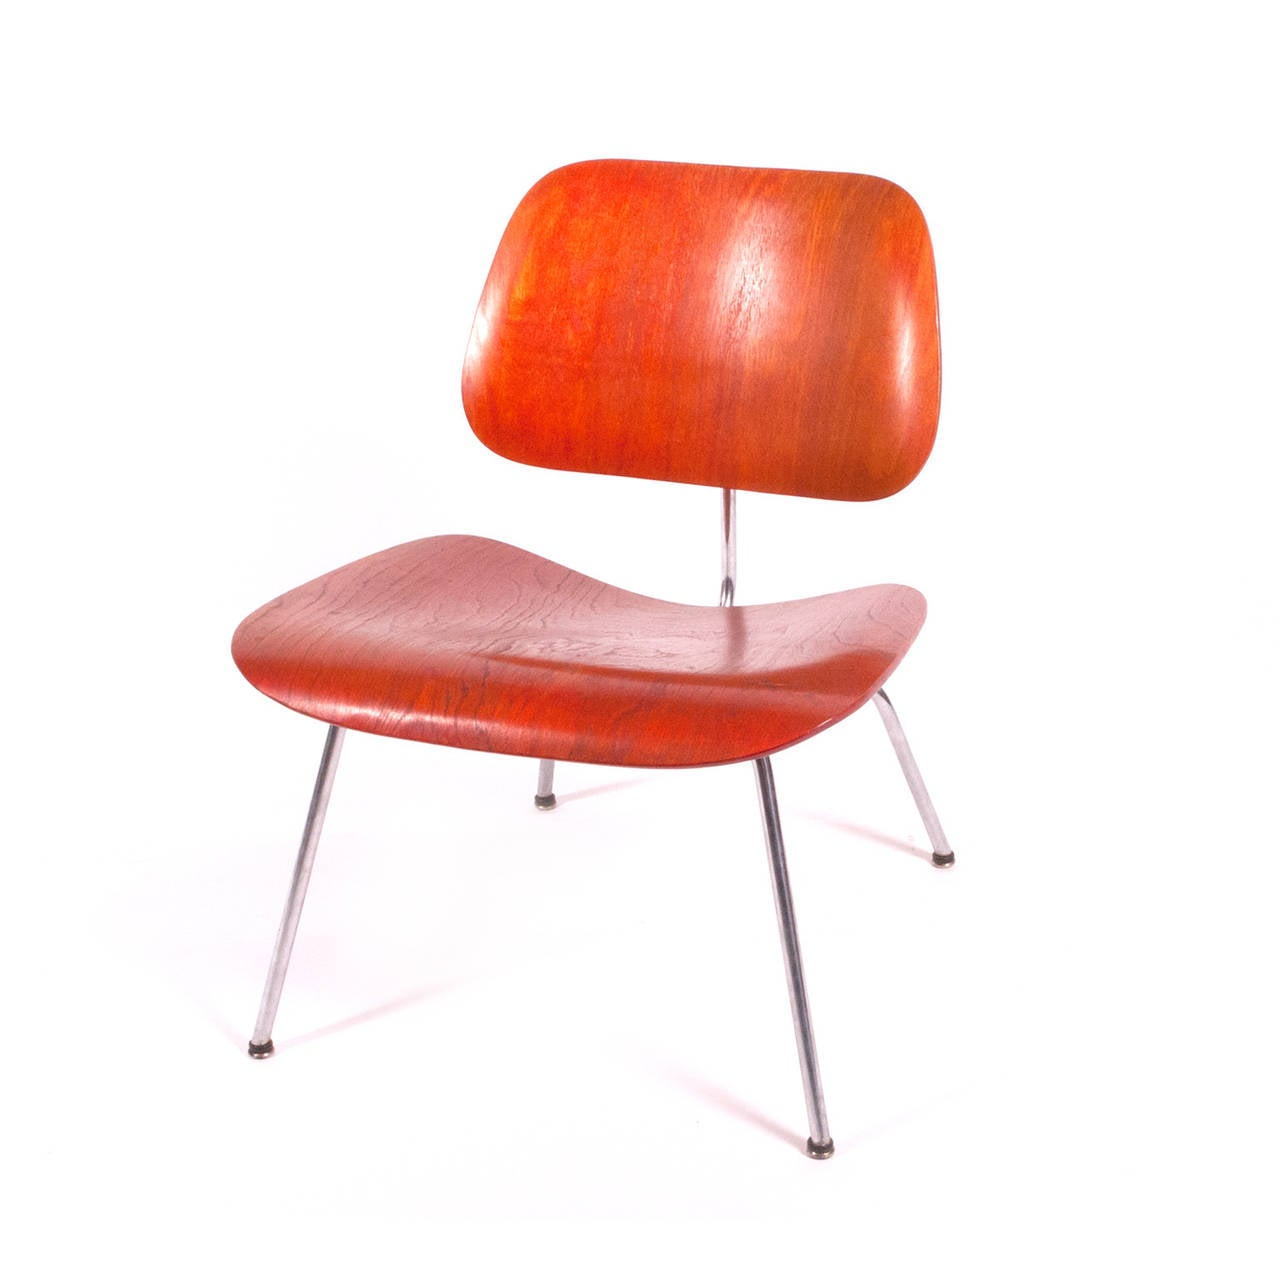 1951 original red aniline dyed lcm chair by charles eames